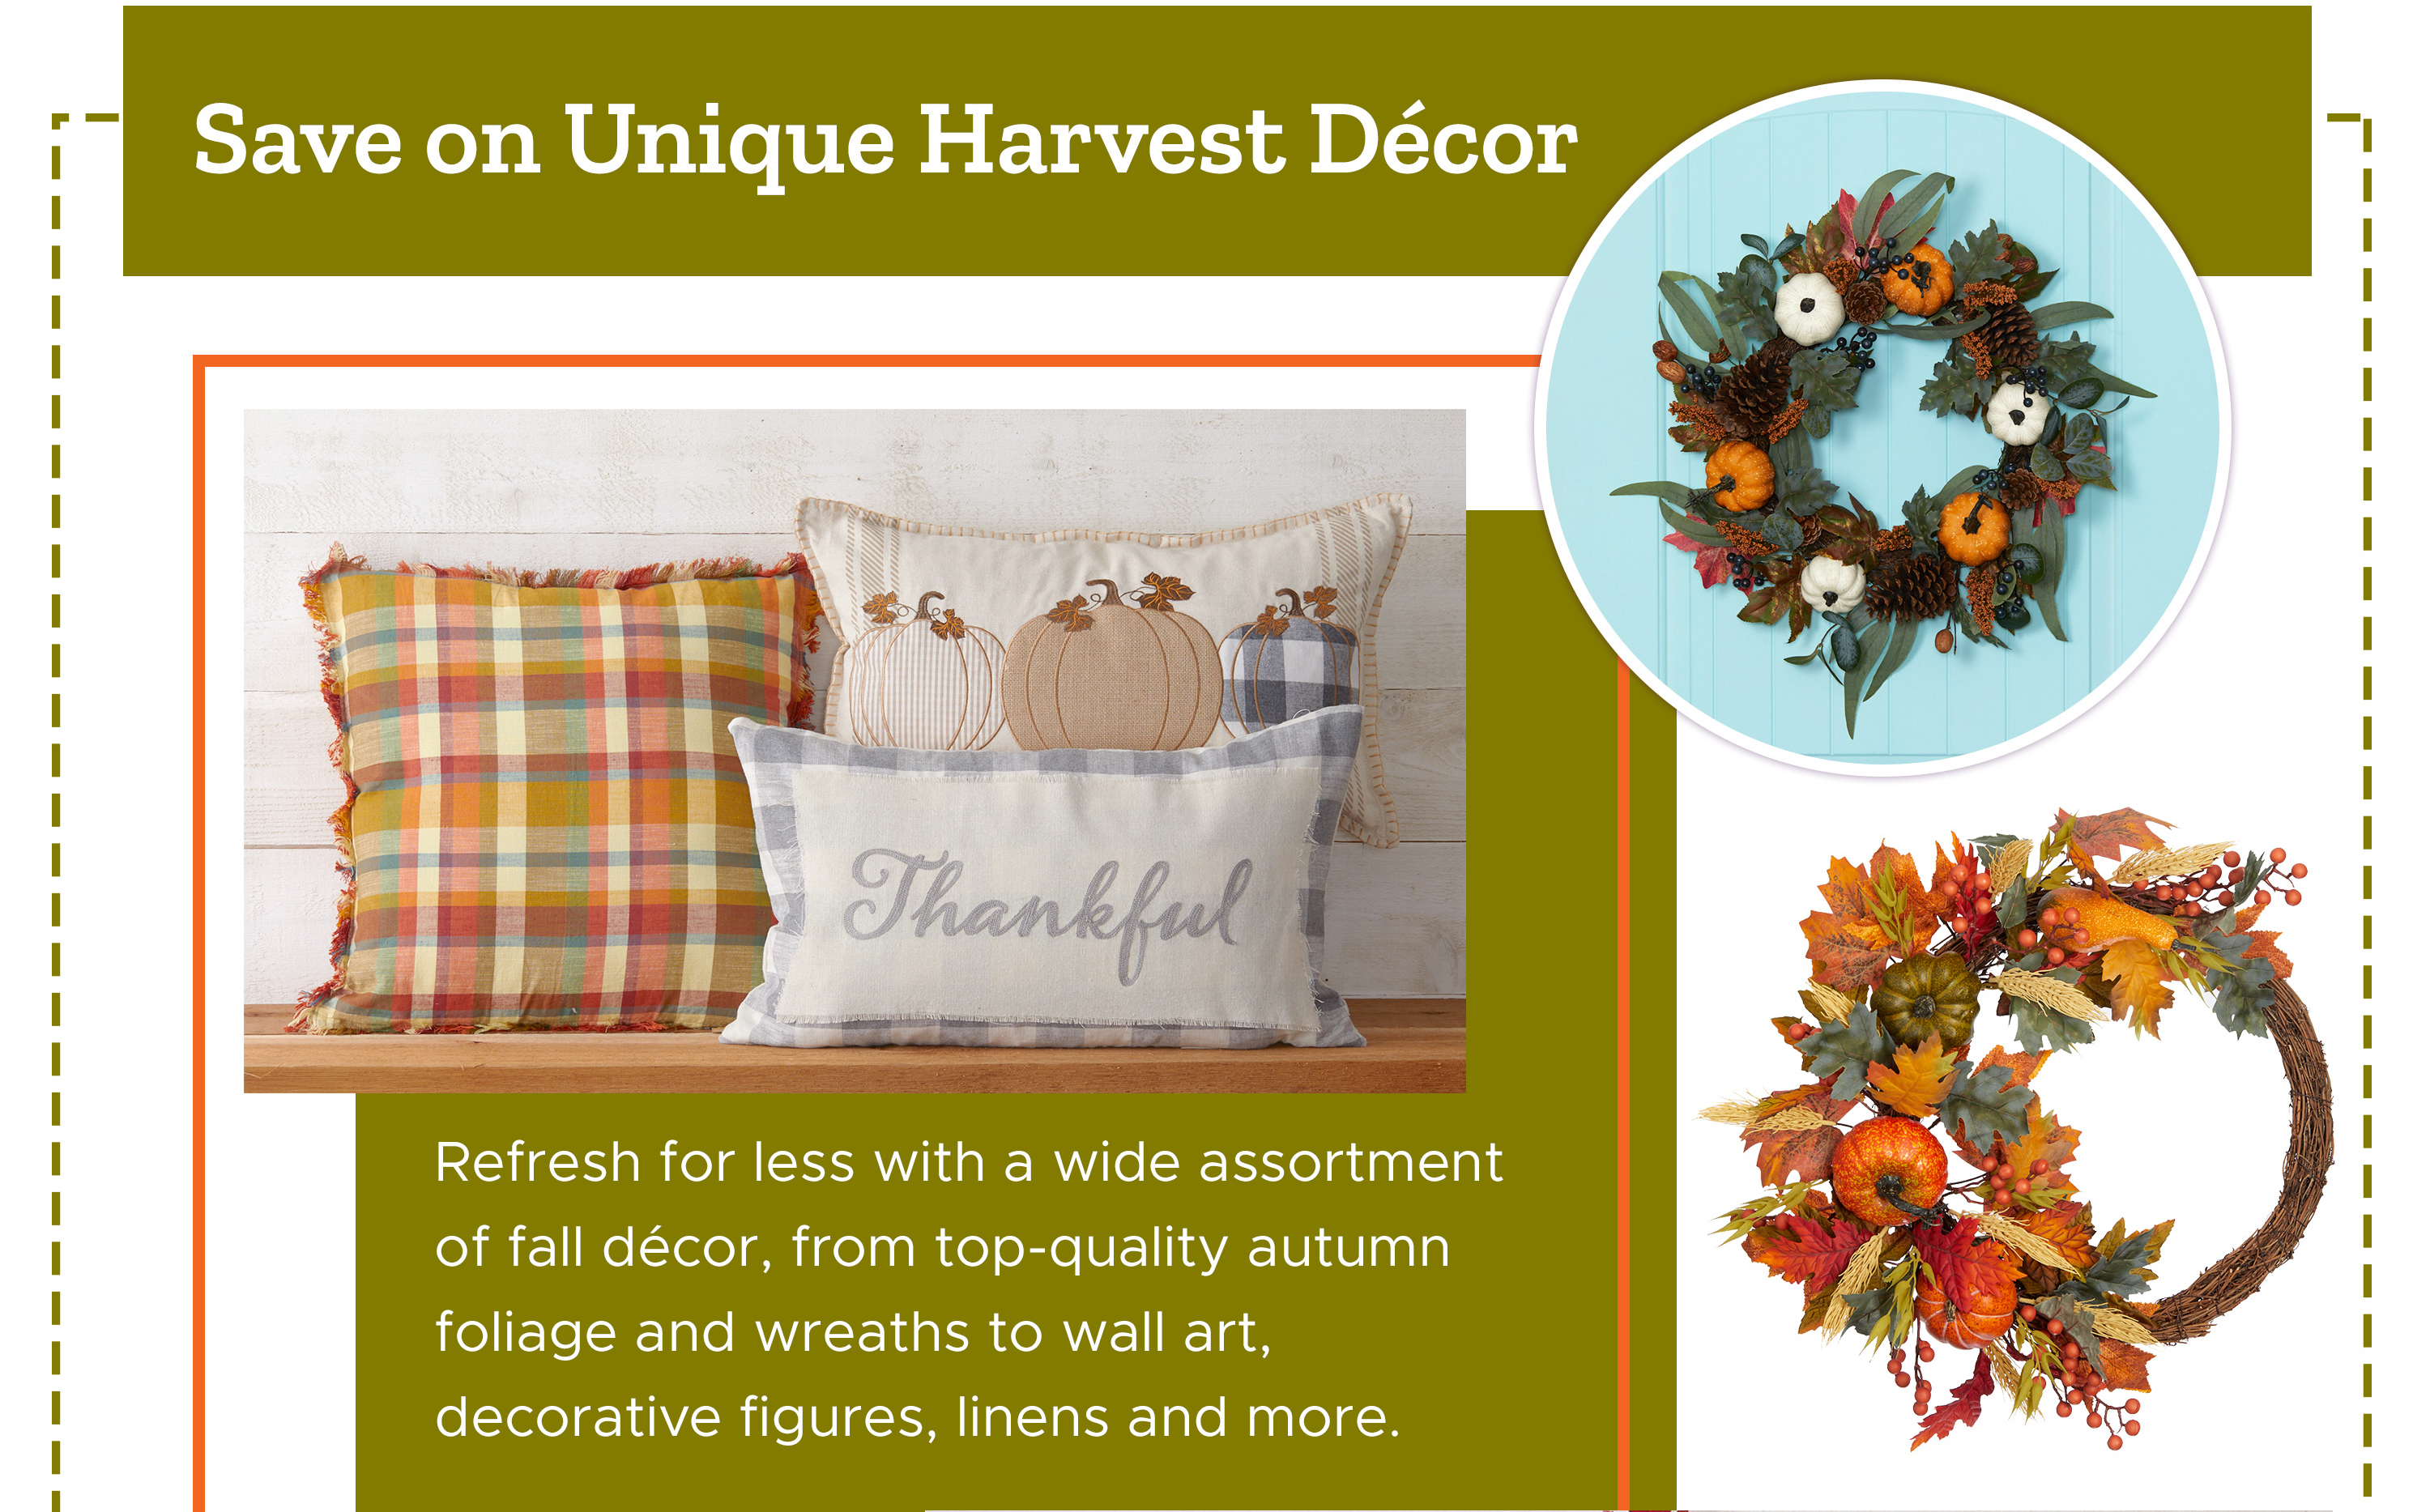 Save on Unique Harvest Décor